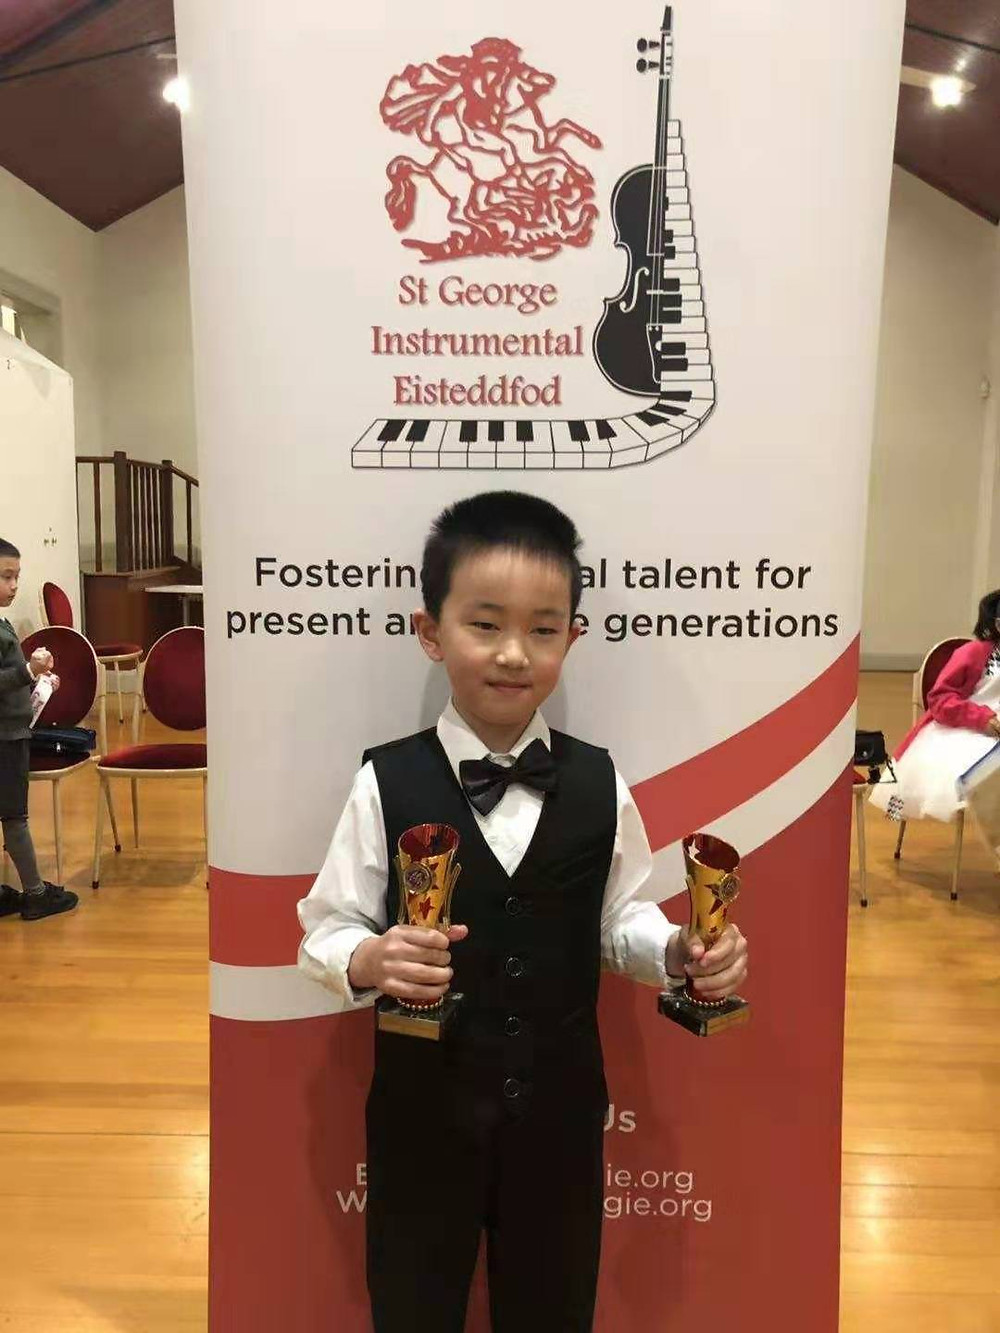 Winner of 2 Bronze trophies at the St George Eisteddfod